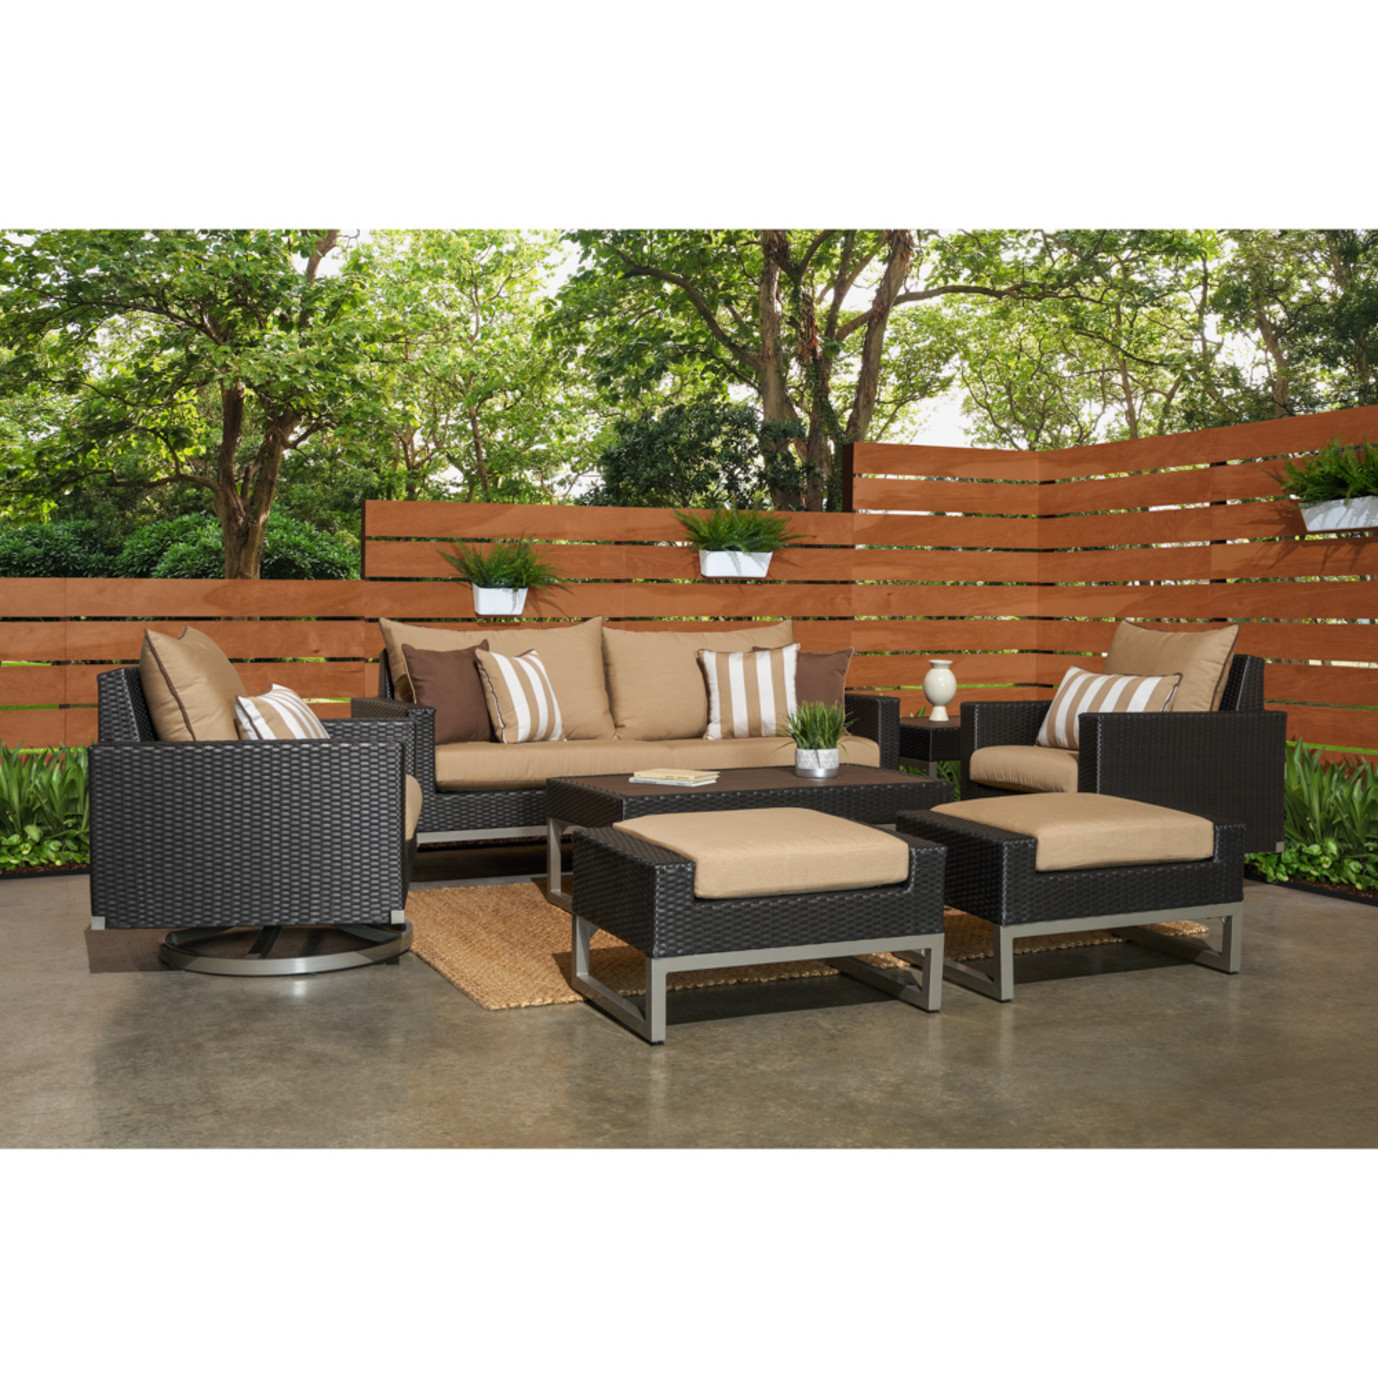 Milo™ Espresso 7 Piece Motion Deep Seating Set - Maxim Beige